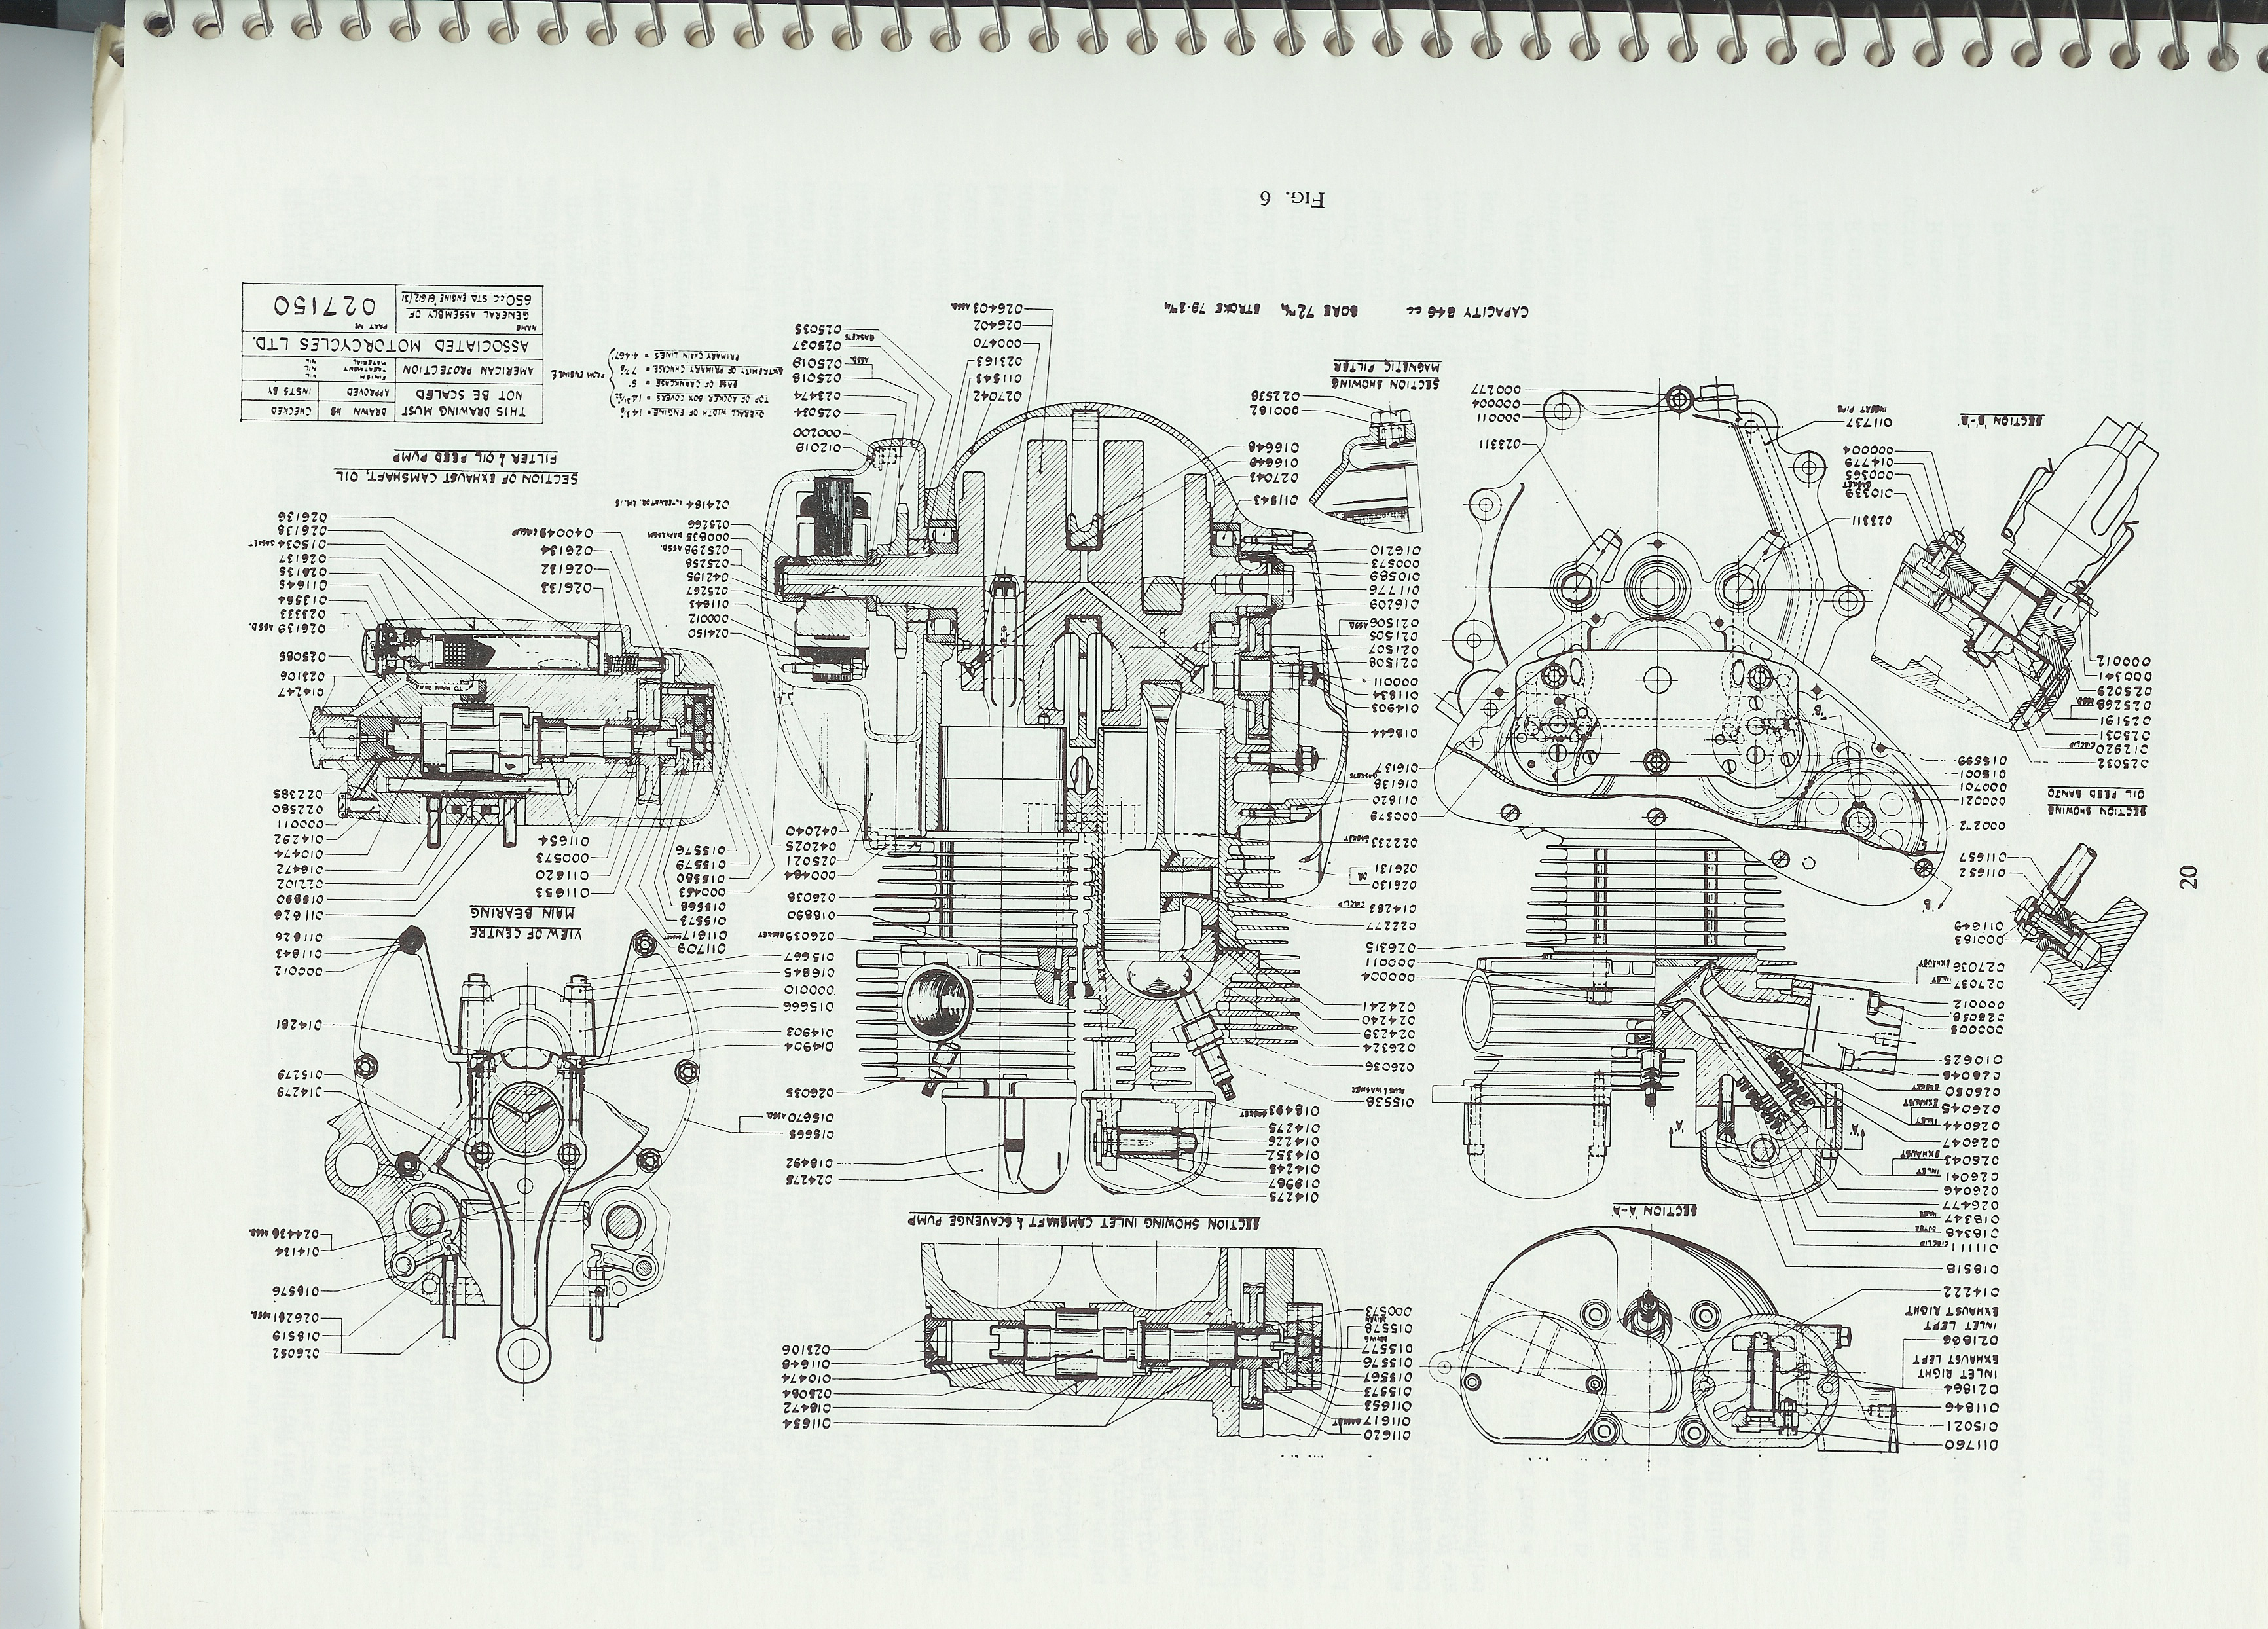 Wiring Diagram For Matchless G80